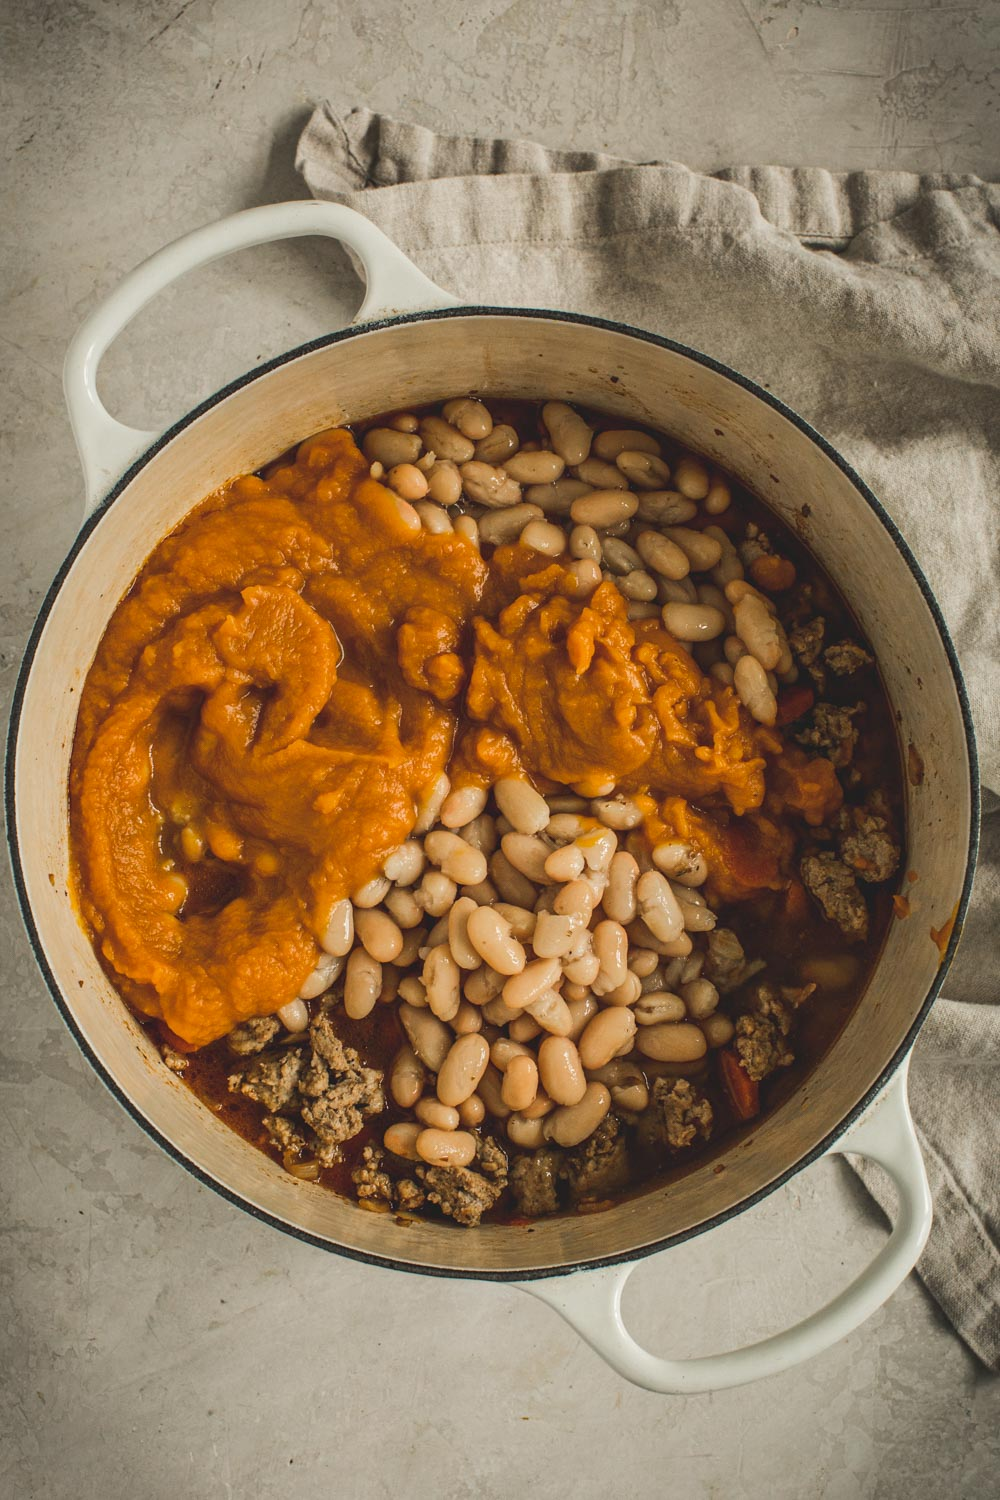 Adding the pumpkin and white beans to the chili.